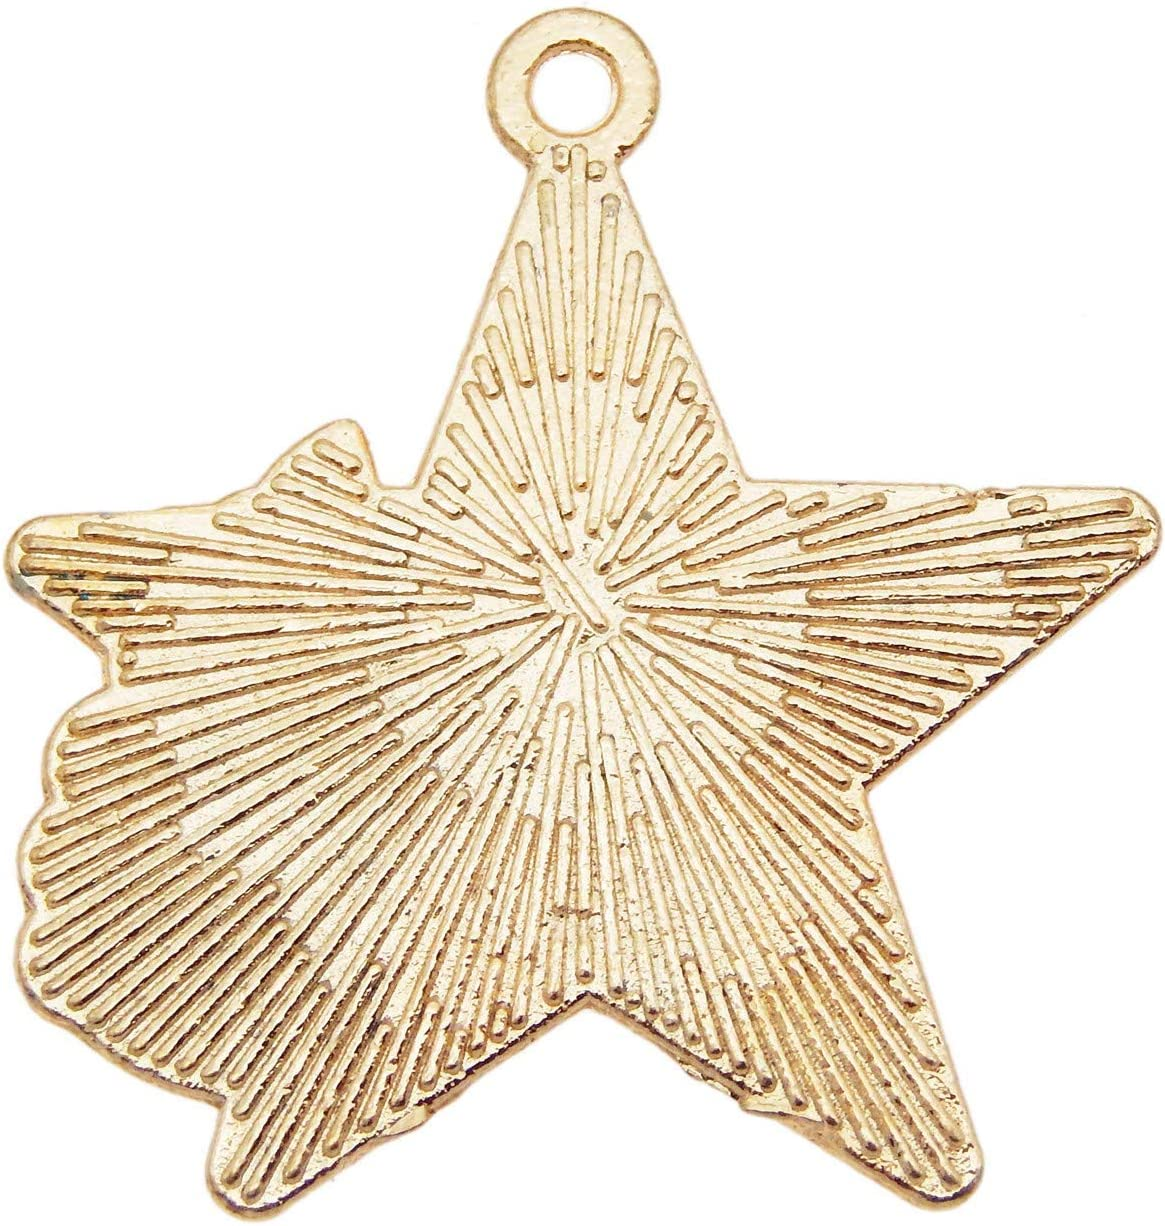 JJG 20pcs Mixed Colors Star Unicorn Enamel Gold Plated Charm Pendant for DIY Jewelry Making Necklace Bracelet Earring Jewelry Accessories Charms